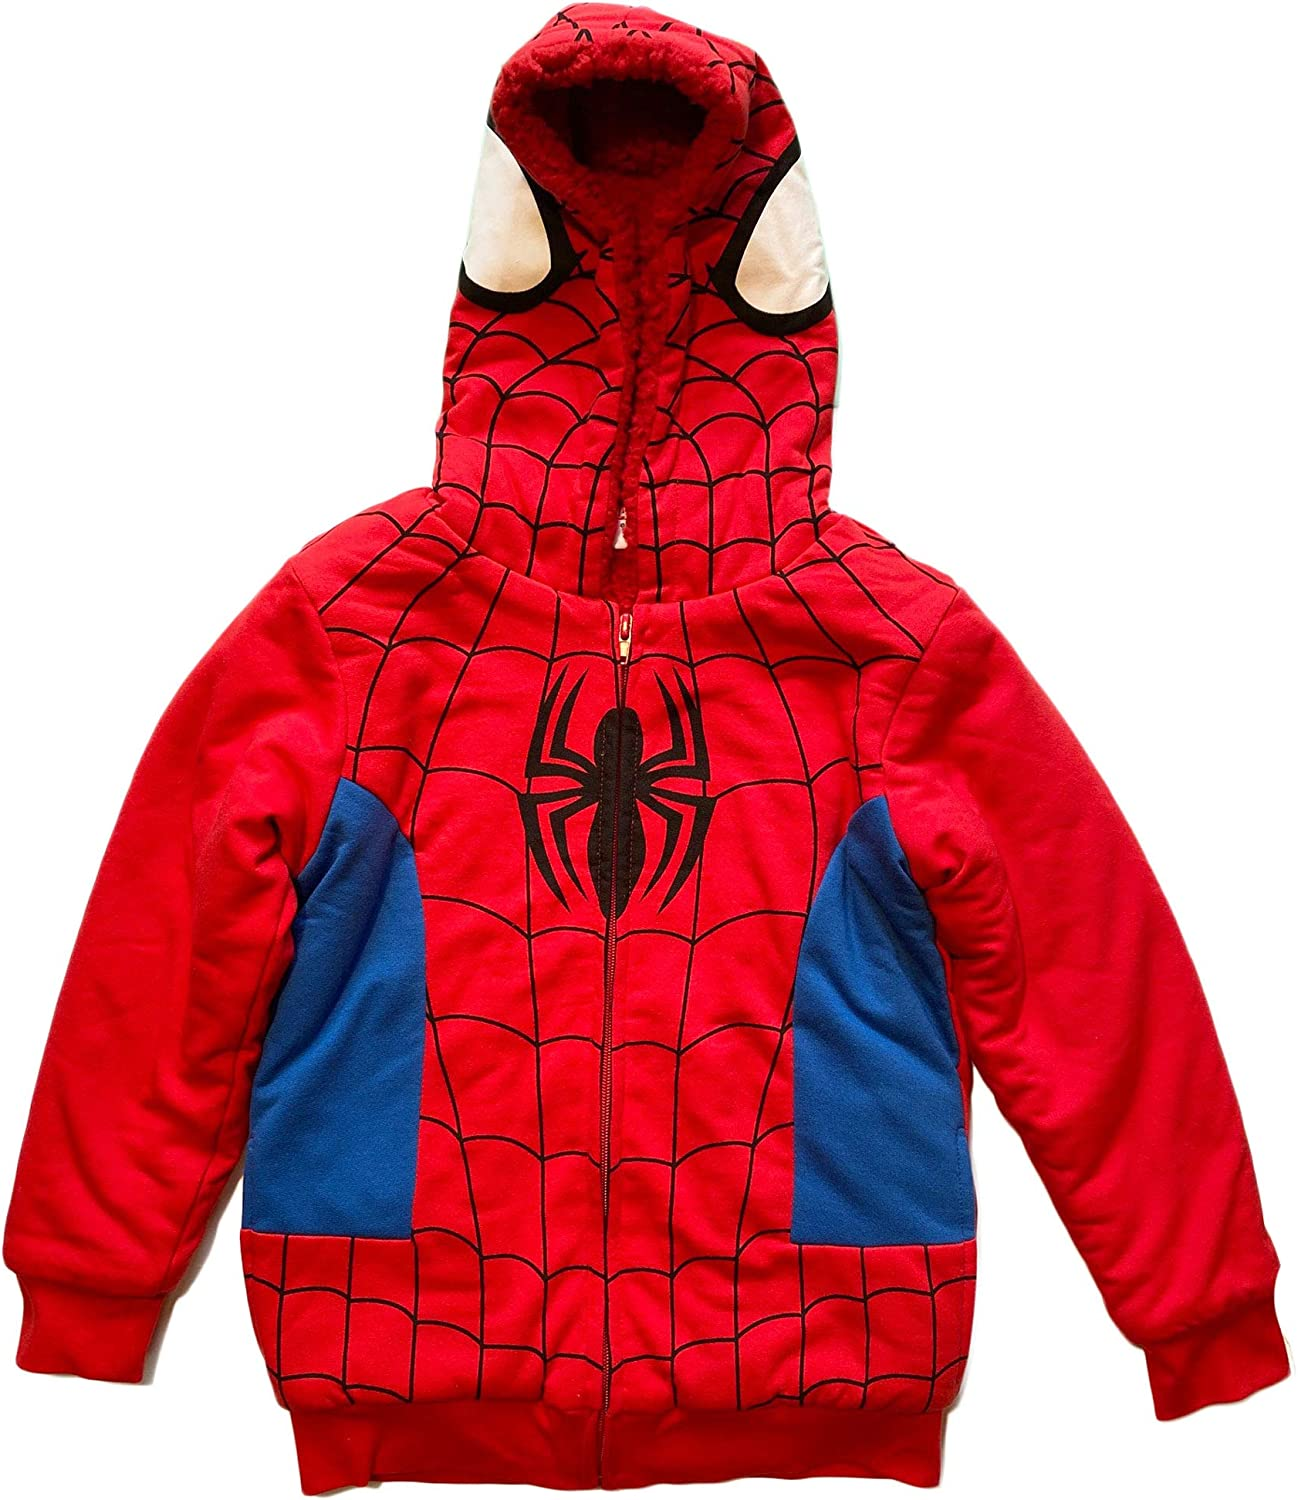 Spider-Man Little All items free National products shipping Boys Hoodie Fleece Sherpa